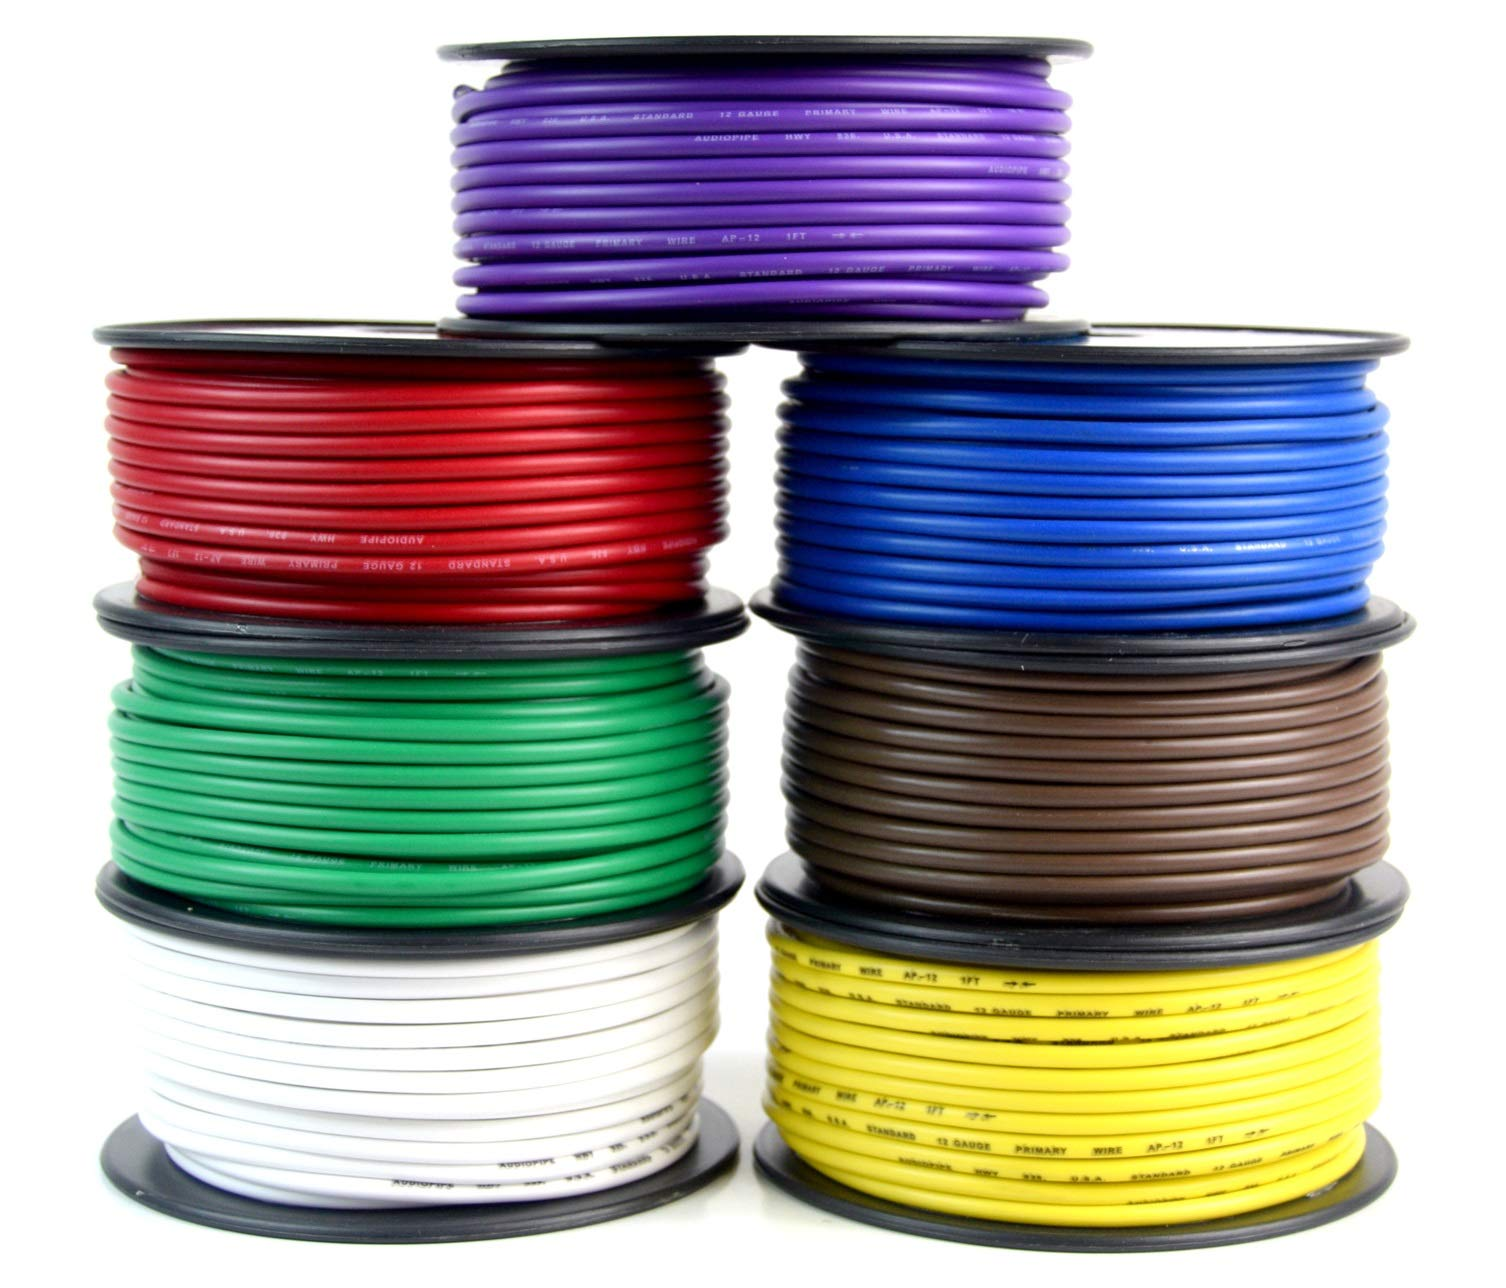 Audiopipe Trailer Wire Light Cable for Harness 7 Way Cord 12 Gauge - 100ft roll - 7 Rolls by Audiopipe